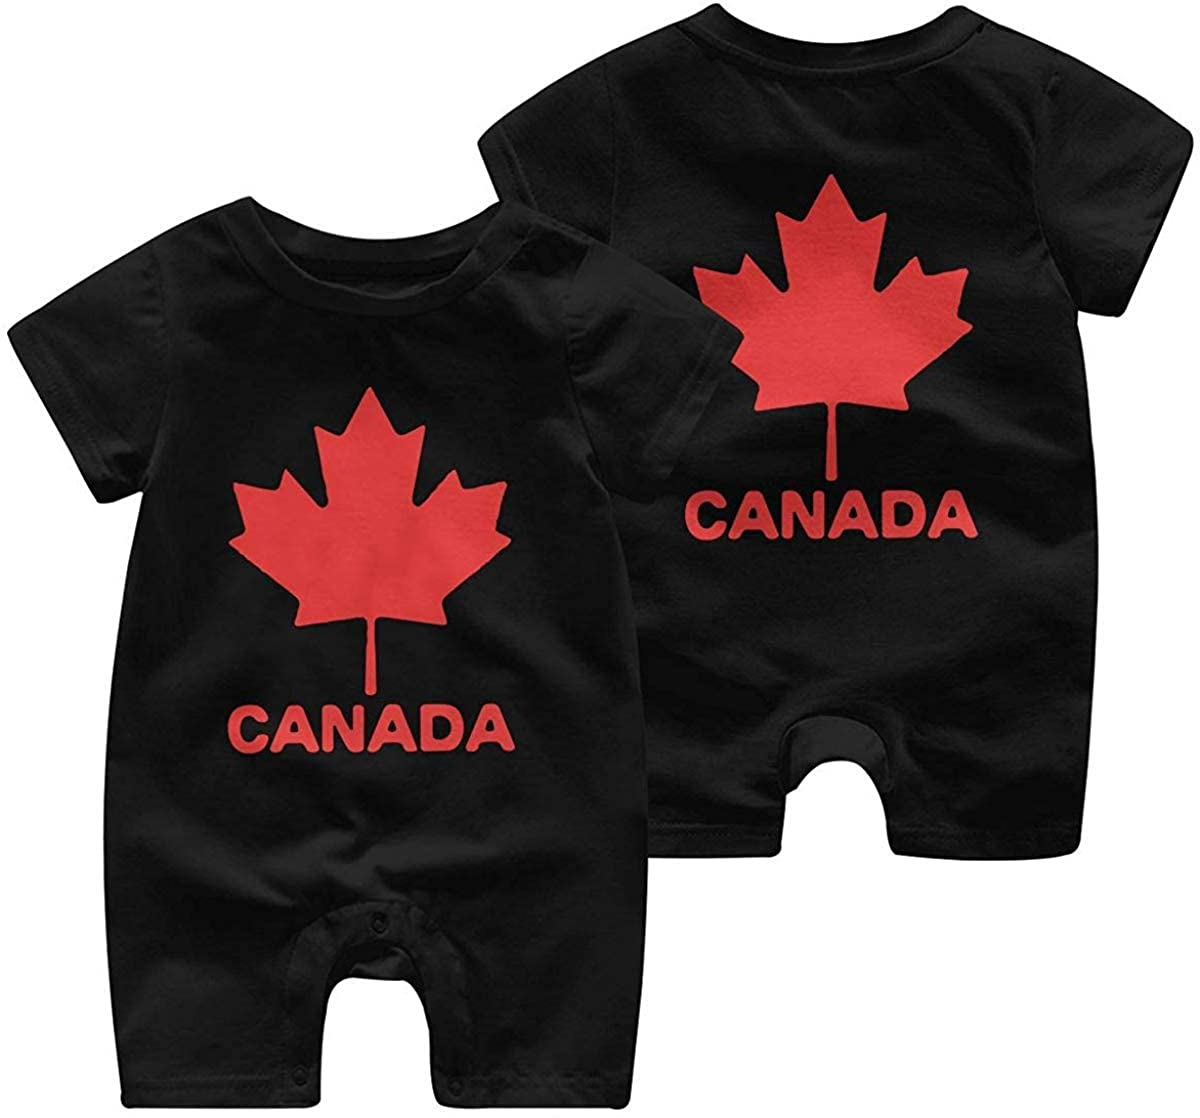 chenbiaoku Canadian Flag Canada Maple Leaf Newborn Baby Short Sleeve Romper Jumpsuit Coverall 0-24 Months